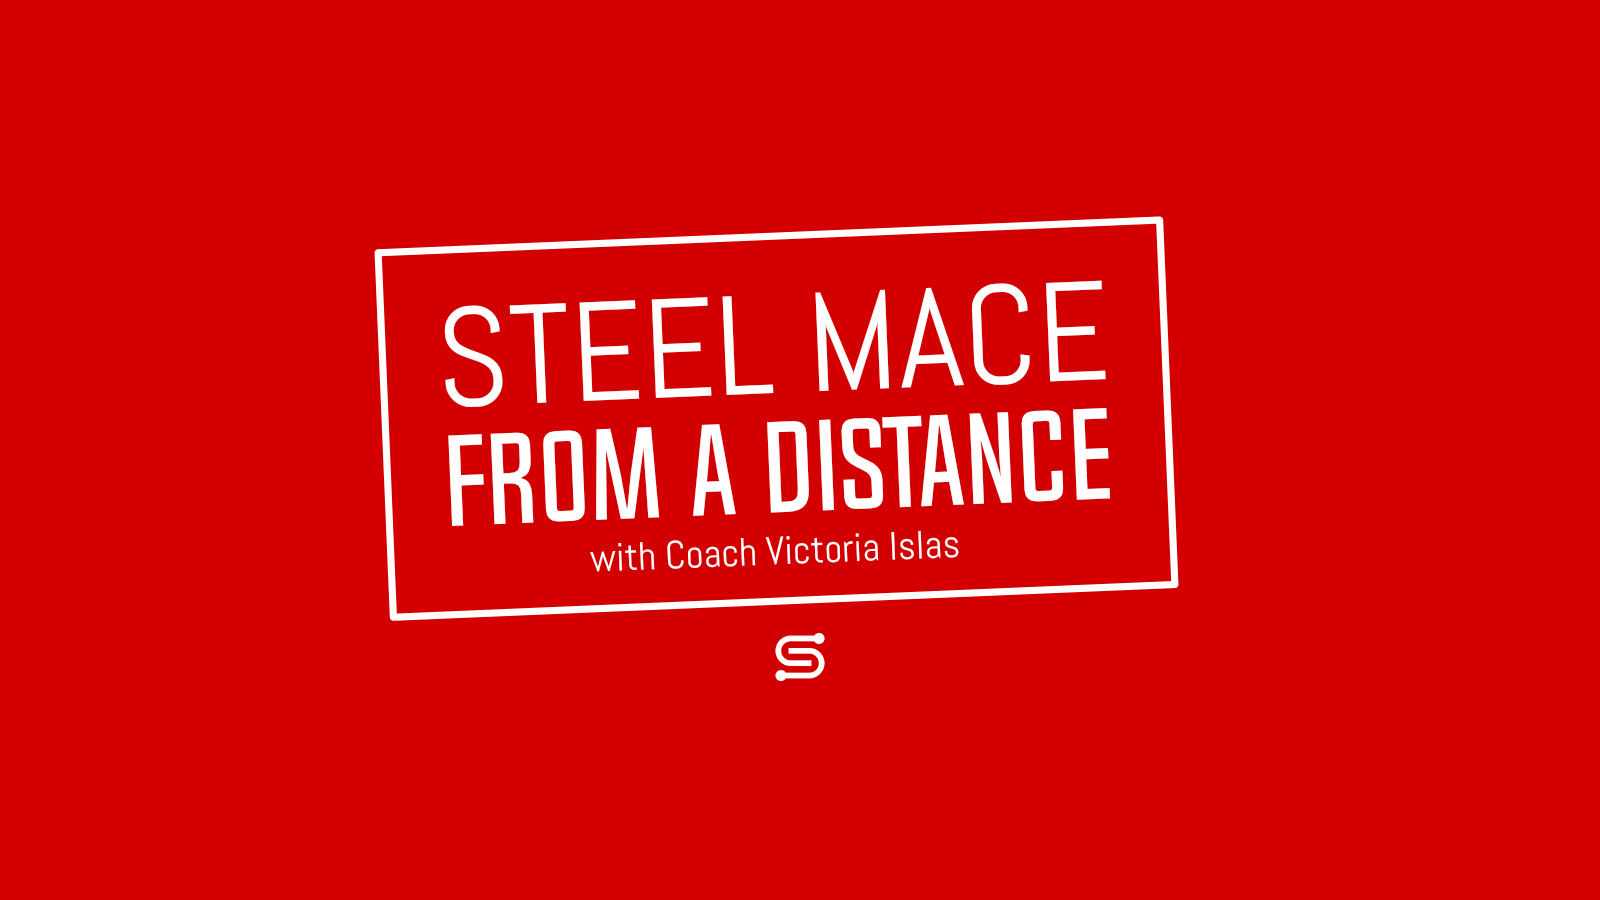 Steel Mace from a Distance – Tabata Workout